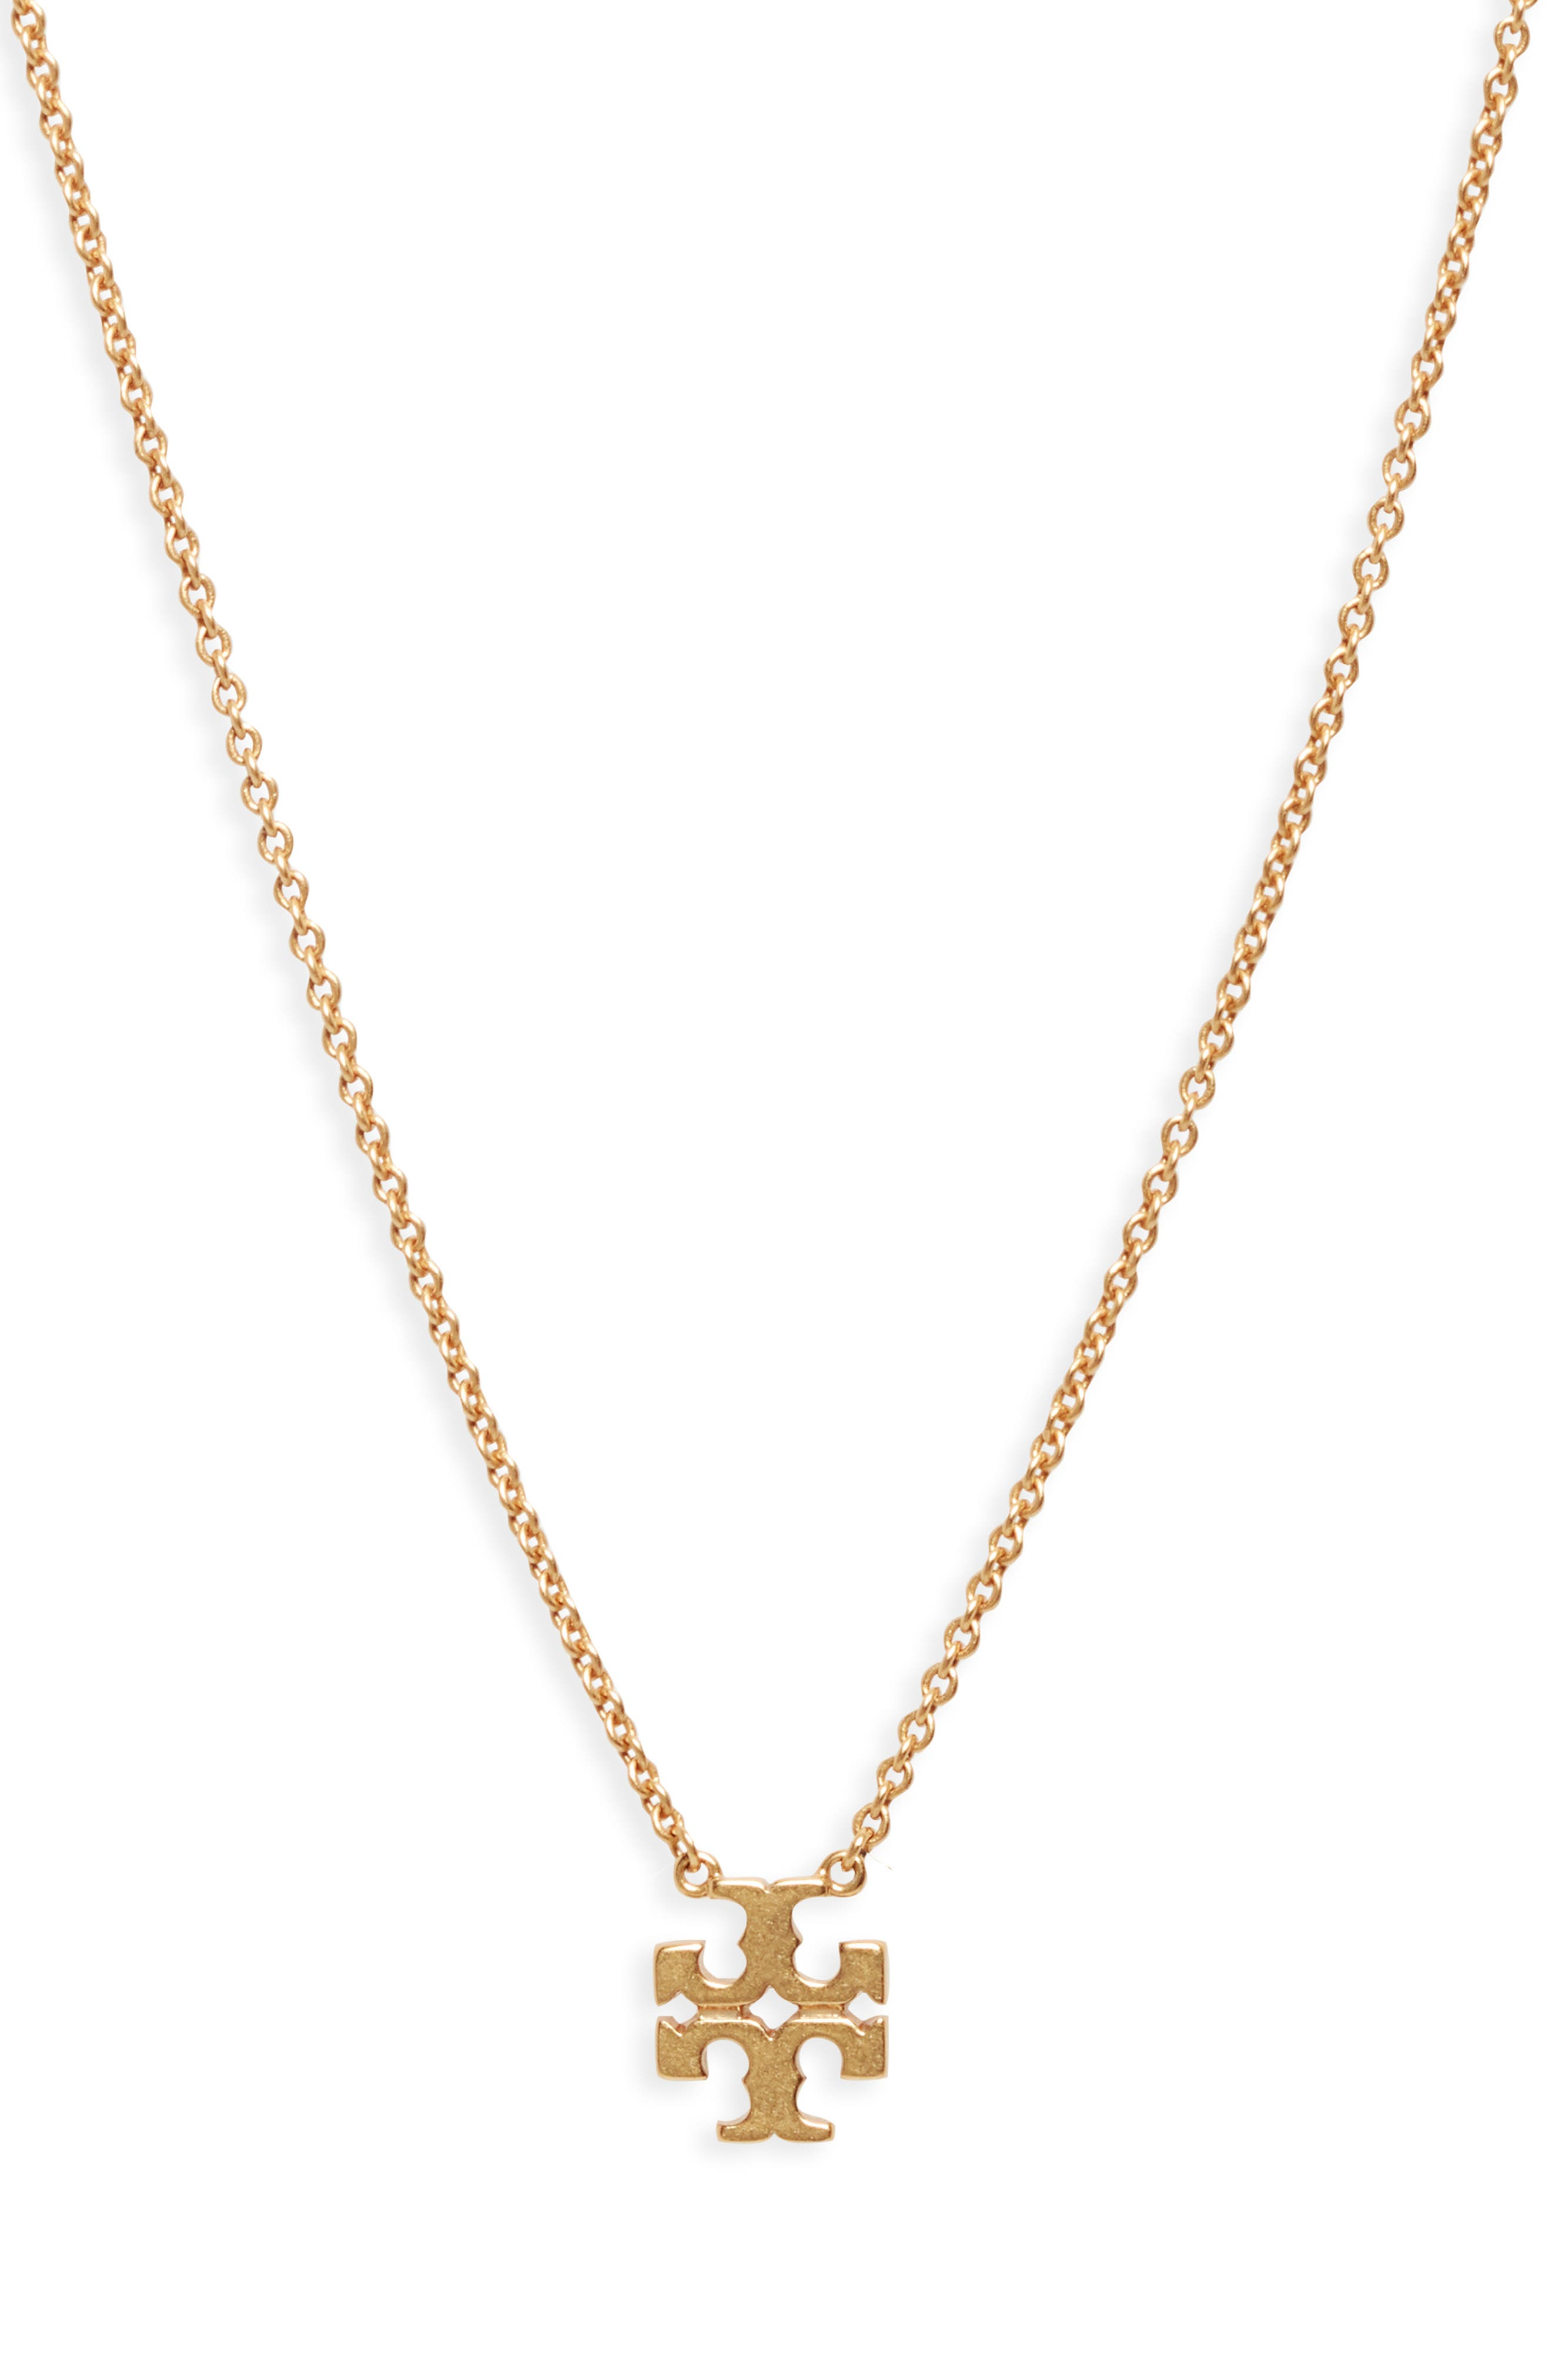 TORY BURCH,                             Logo Charm Necklace,                             Main thumbnail 1, color,                             ROLLED BRASS 59